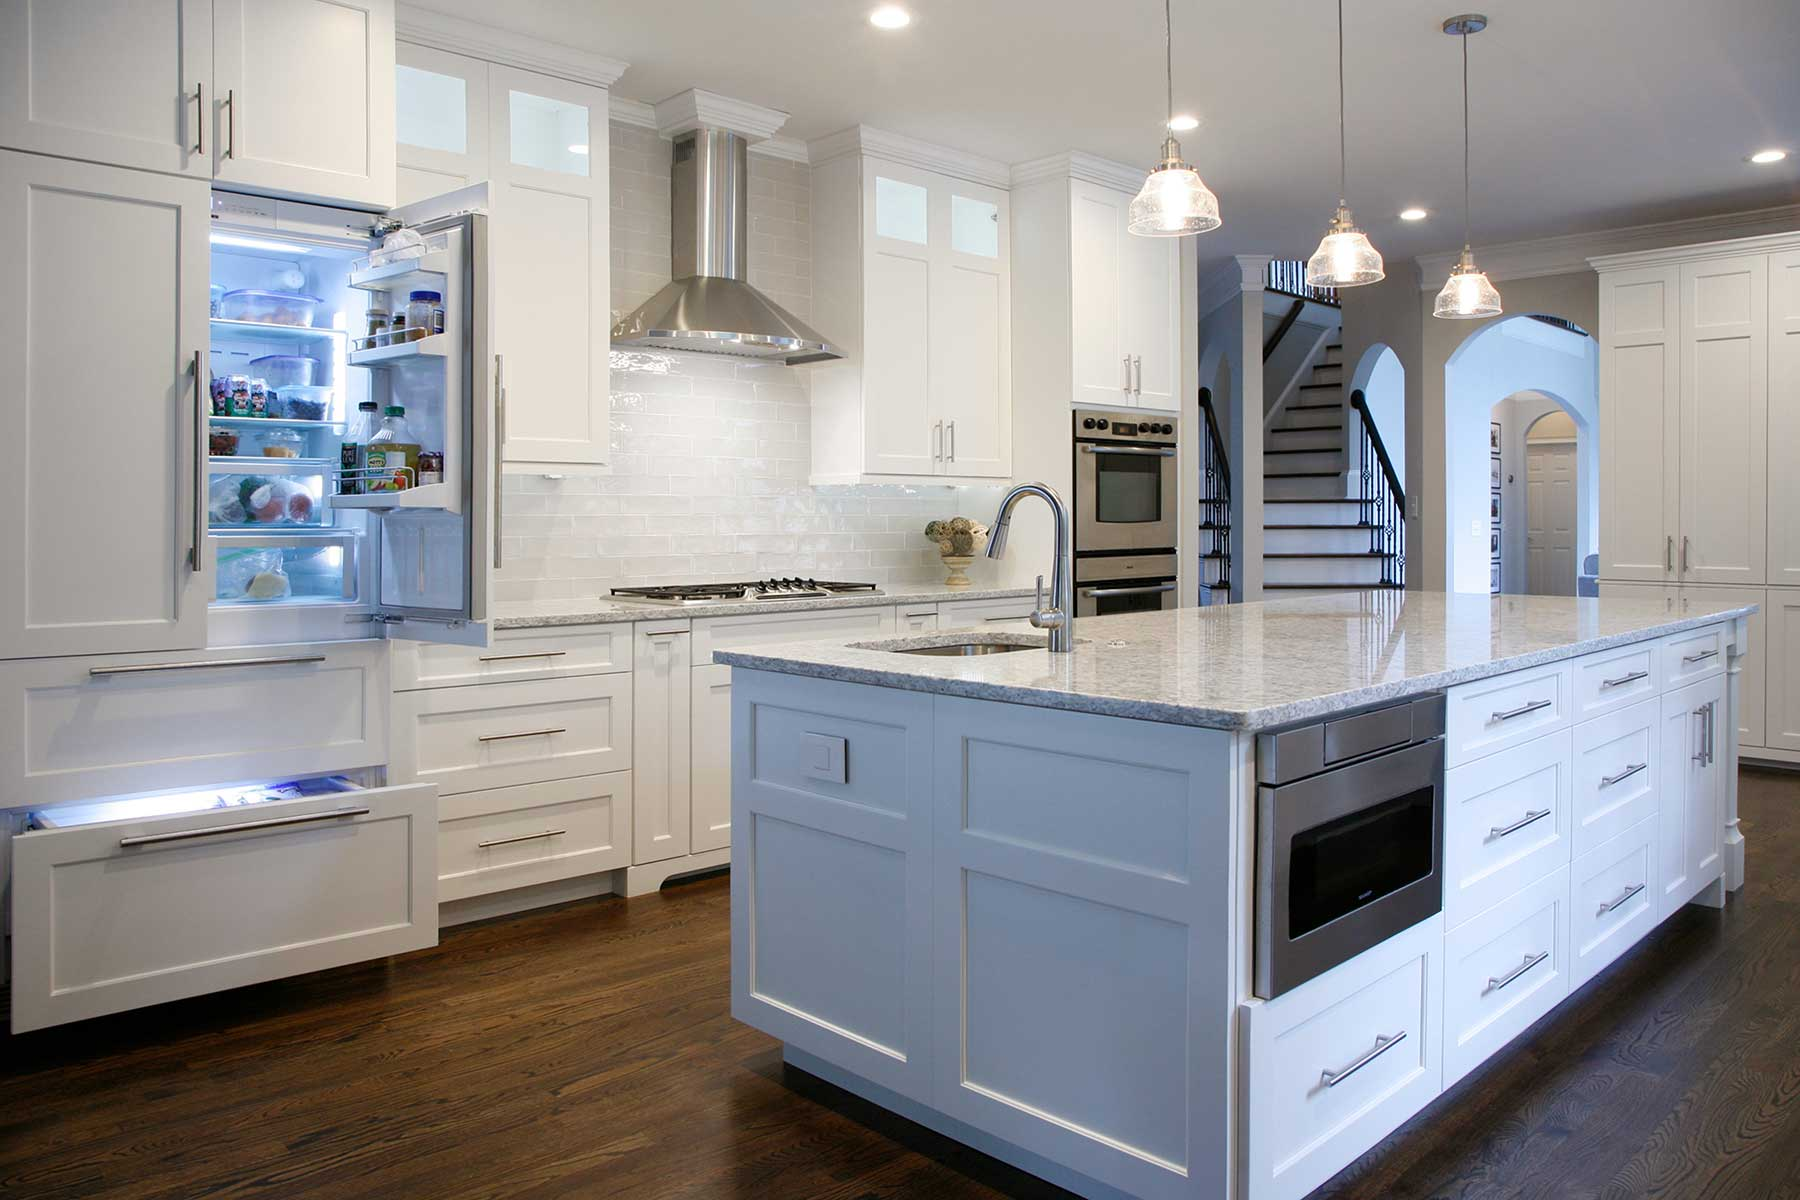 Integrated refrigerator blends perfectly with kitchen cabinets